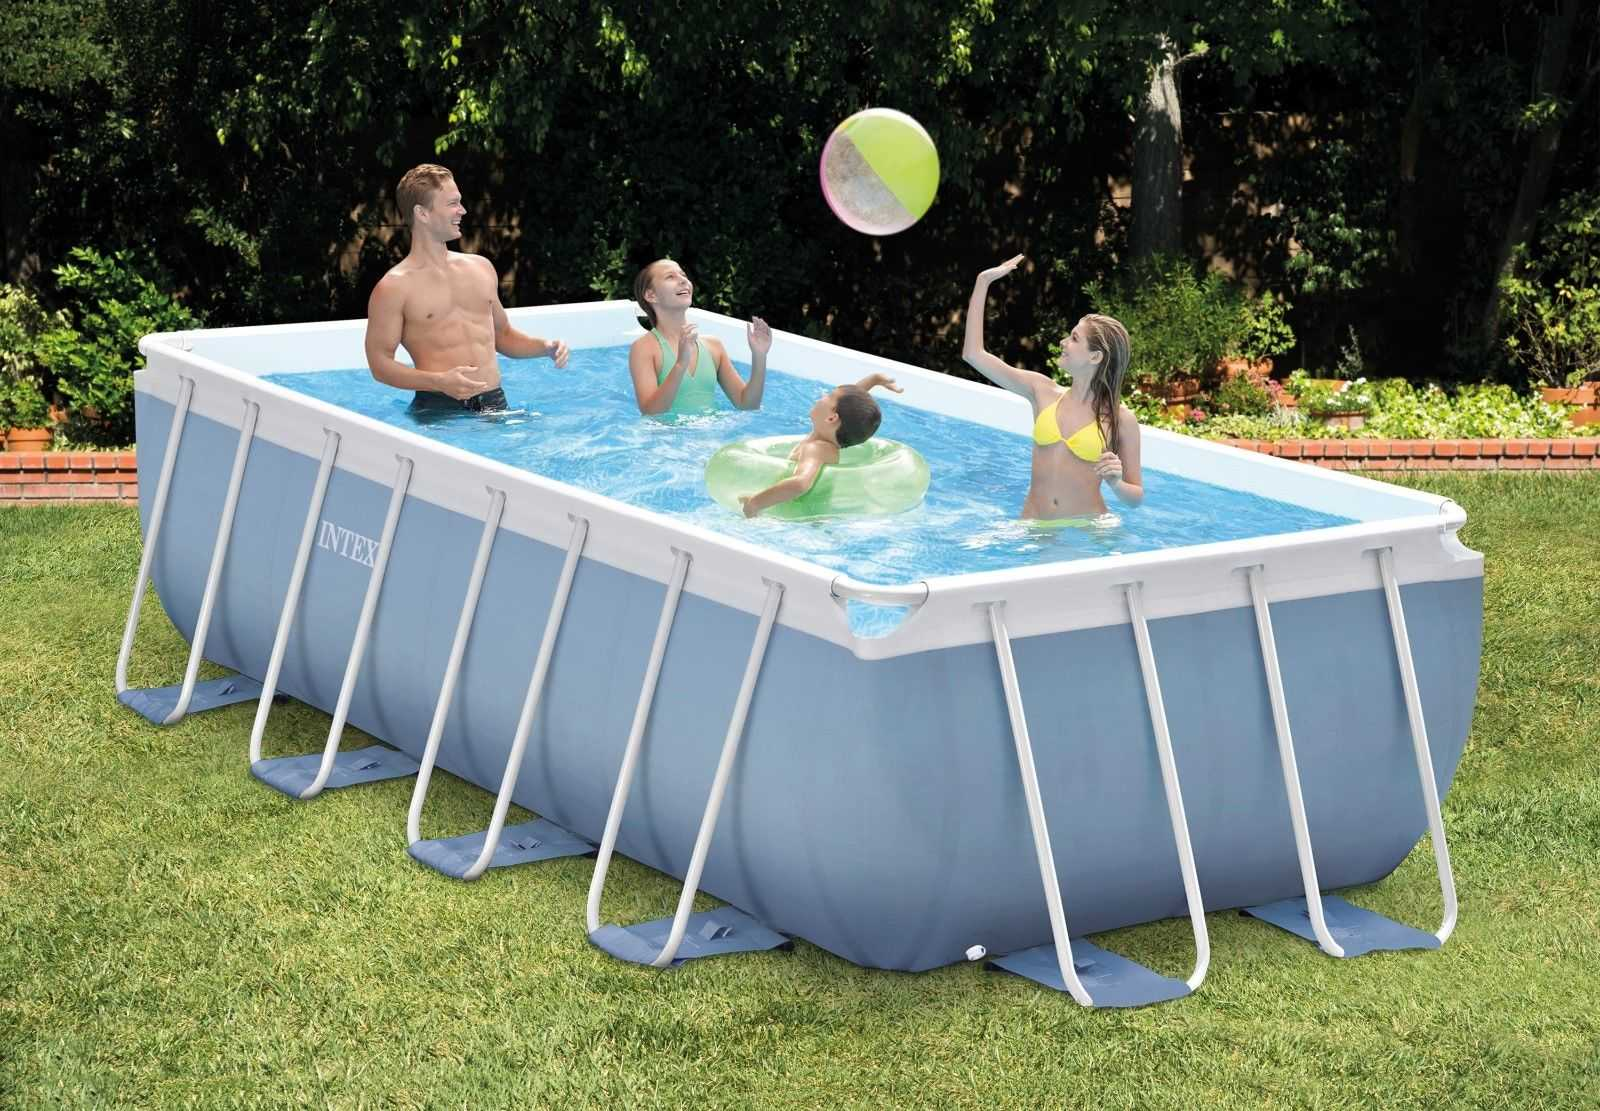 intex frame pool set prism quadra 300 x 175 x 80 ebay fuer 259 e statt 359 e